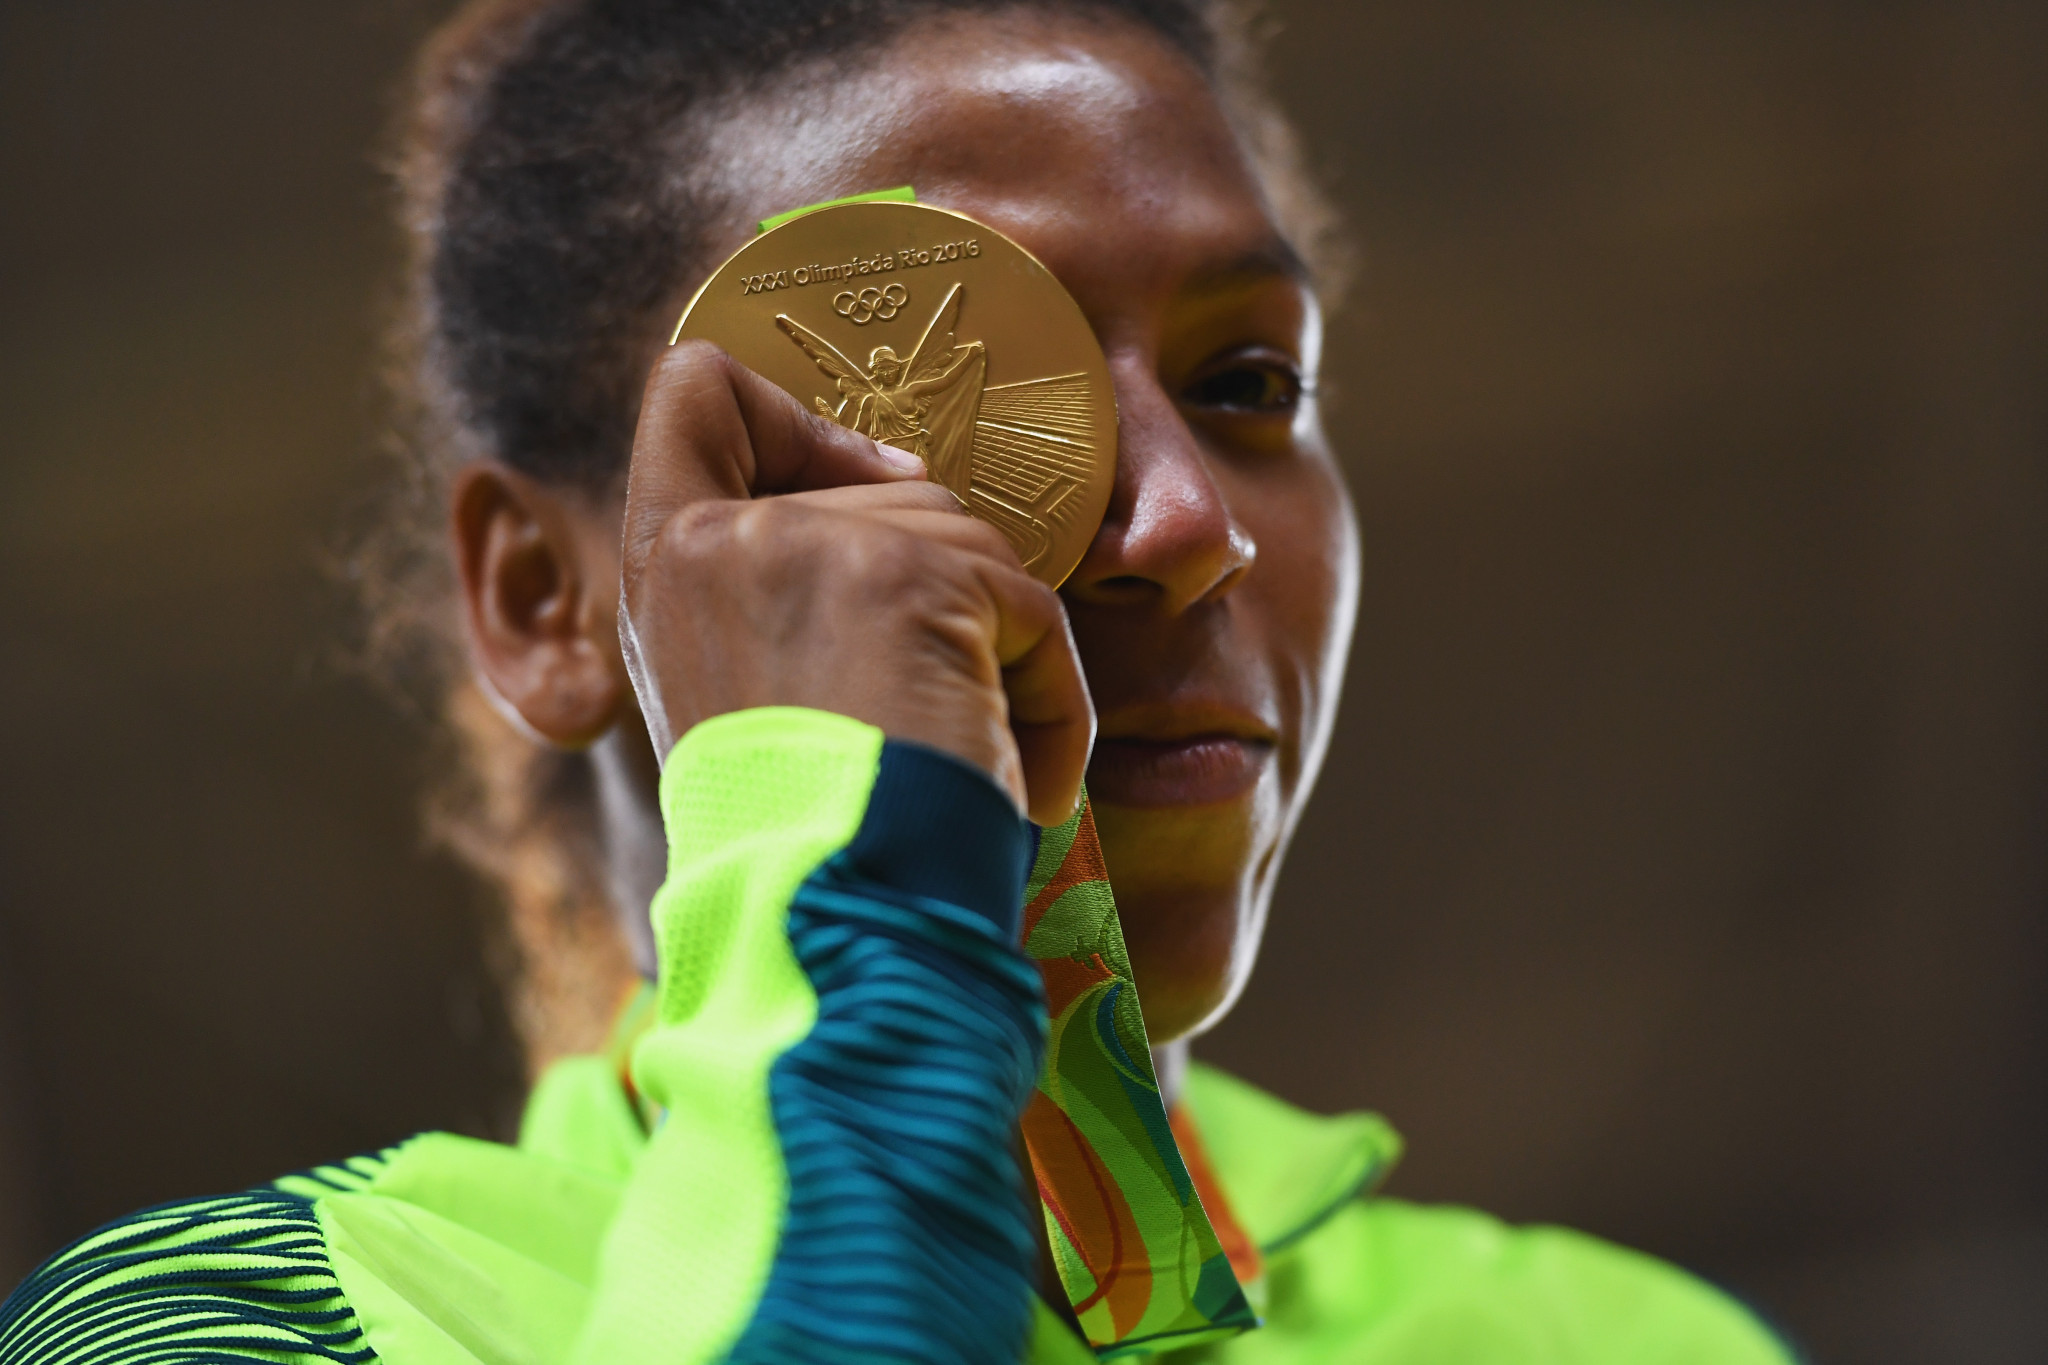 Rafaela Silva is a reigning Olympic judo champion ©Getty Images